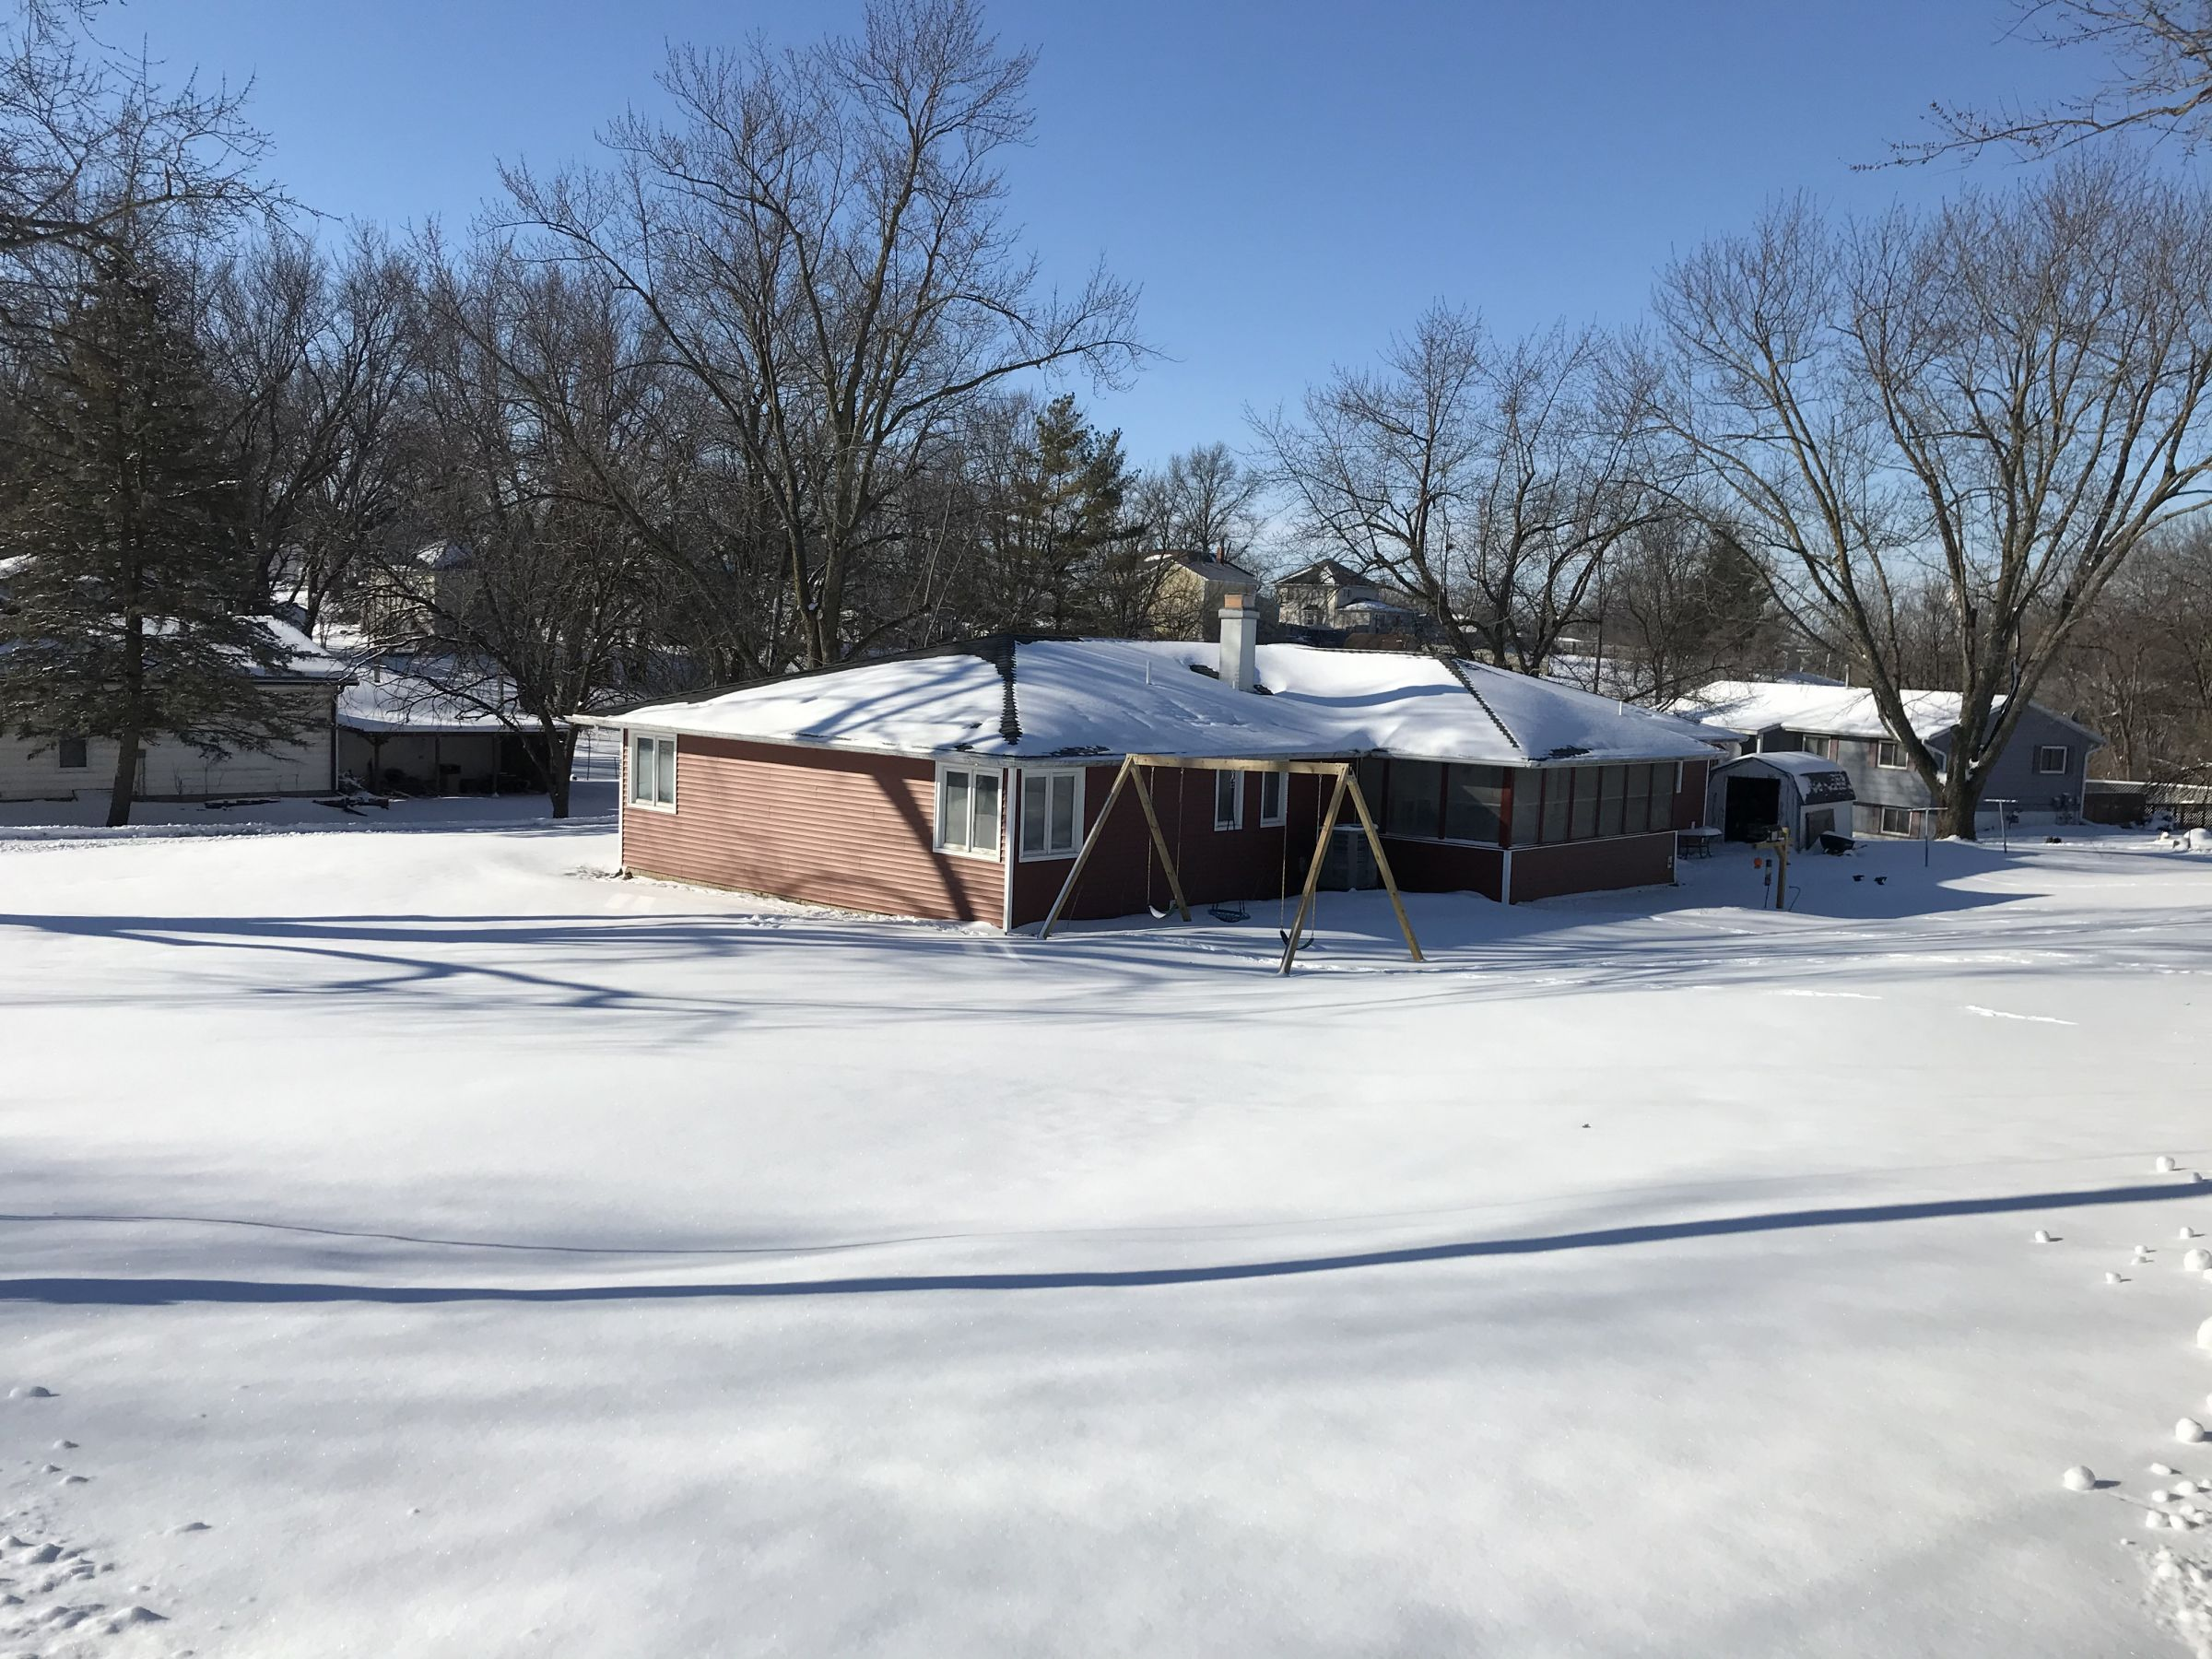 residential-lucas-county-iowa-0-acres-listing-number-15320-4-2021-02-01-152117.jpg